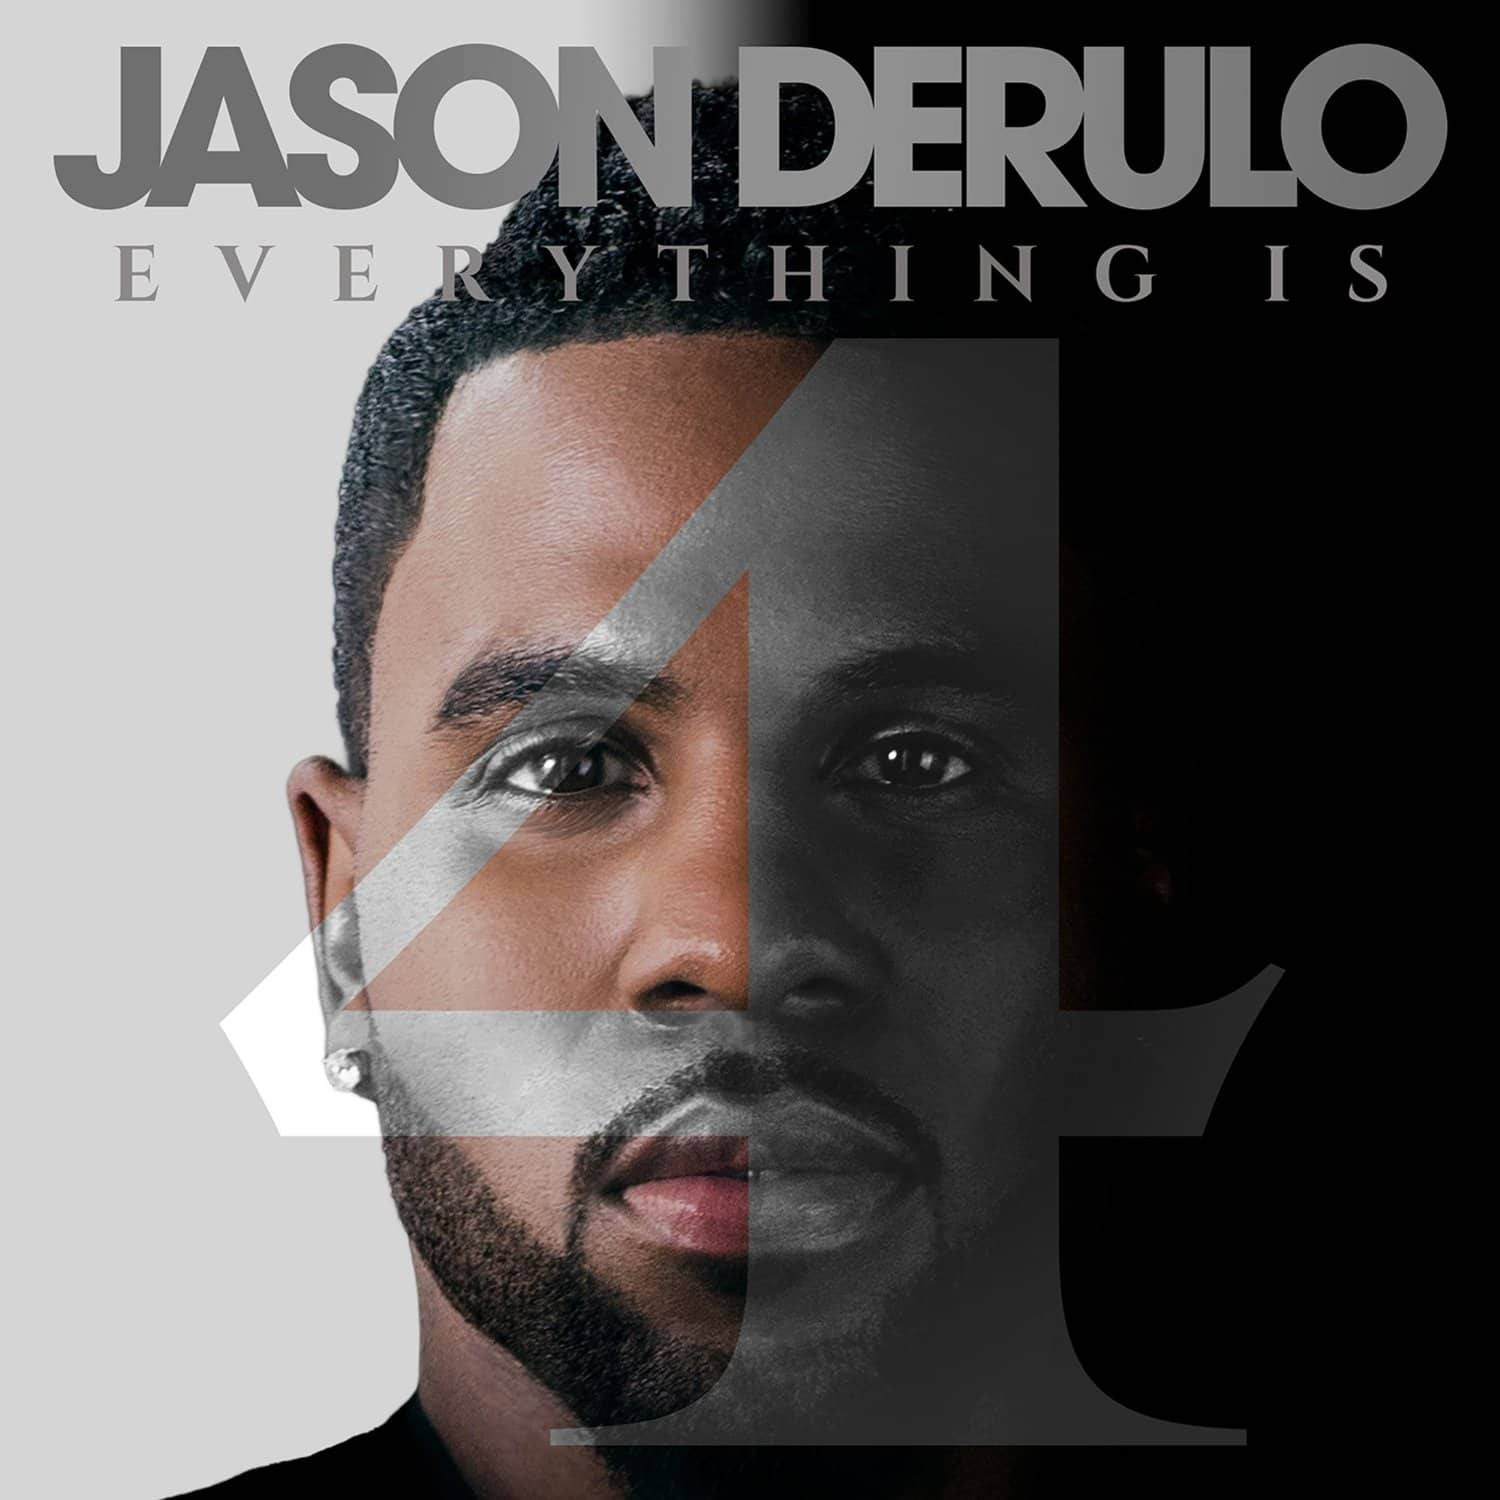 Jason Derulo: Everything Is 4 (Digital MP3 Album Download)  Free